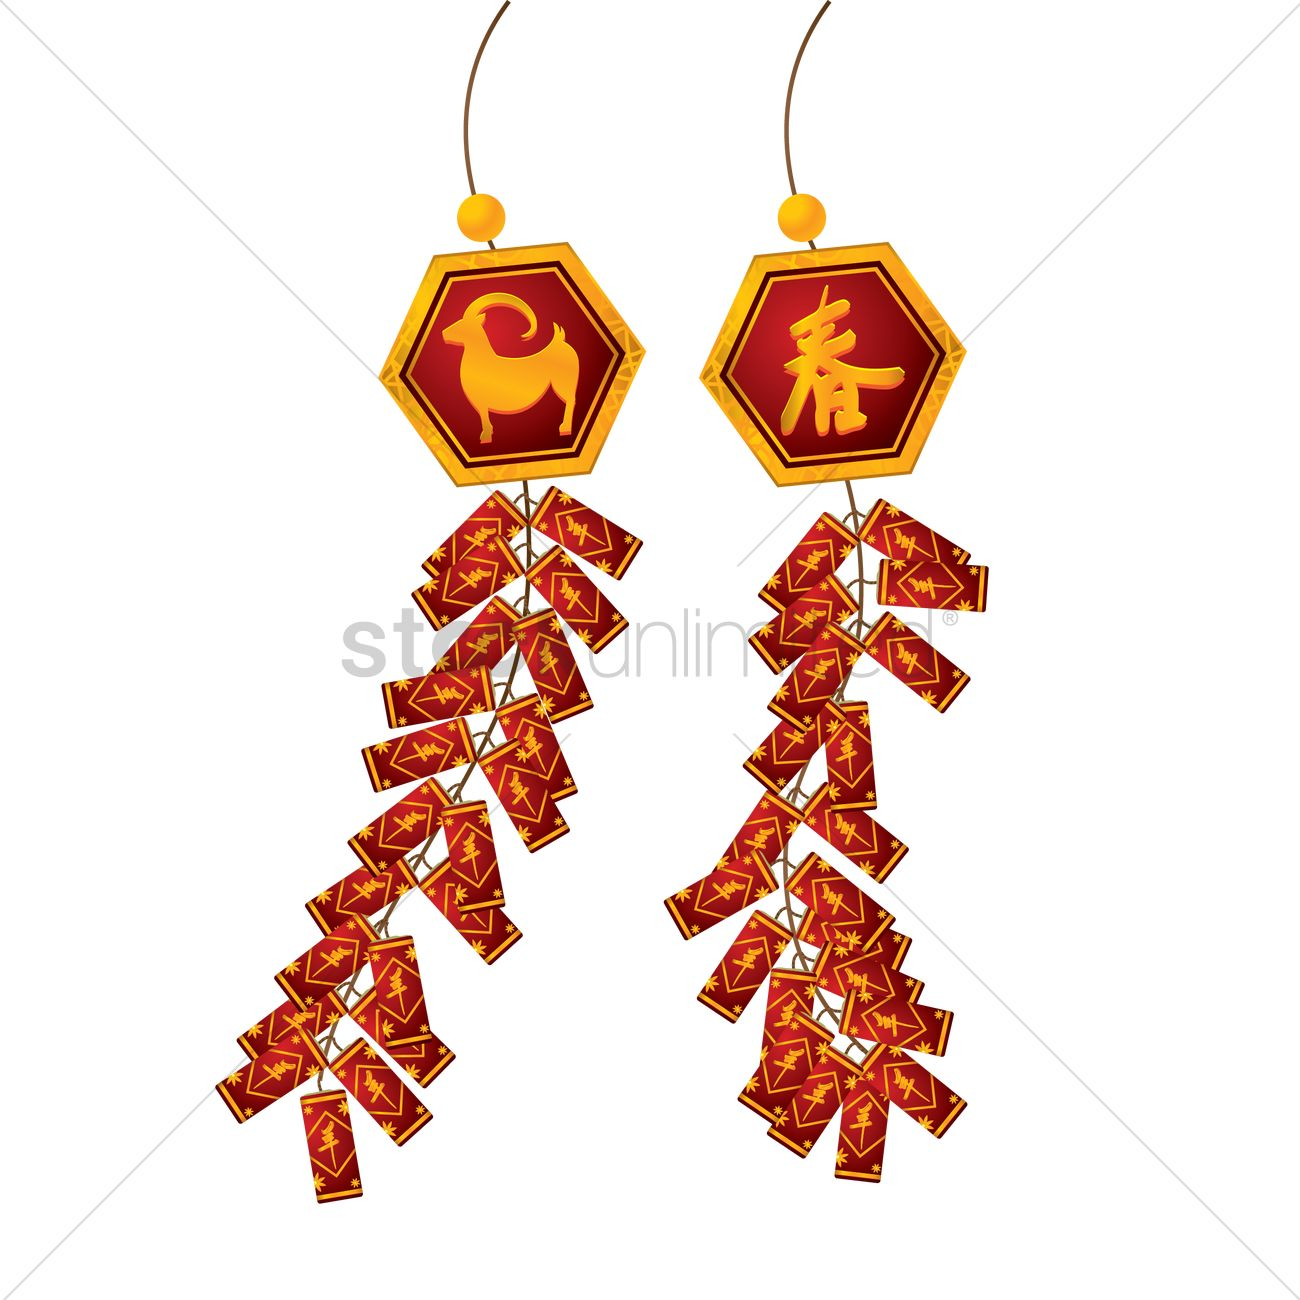 Chinese firecrackers Vector Image - 1354722 | StockUnlimited